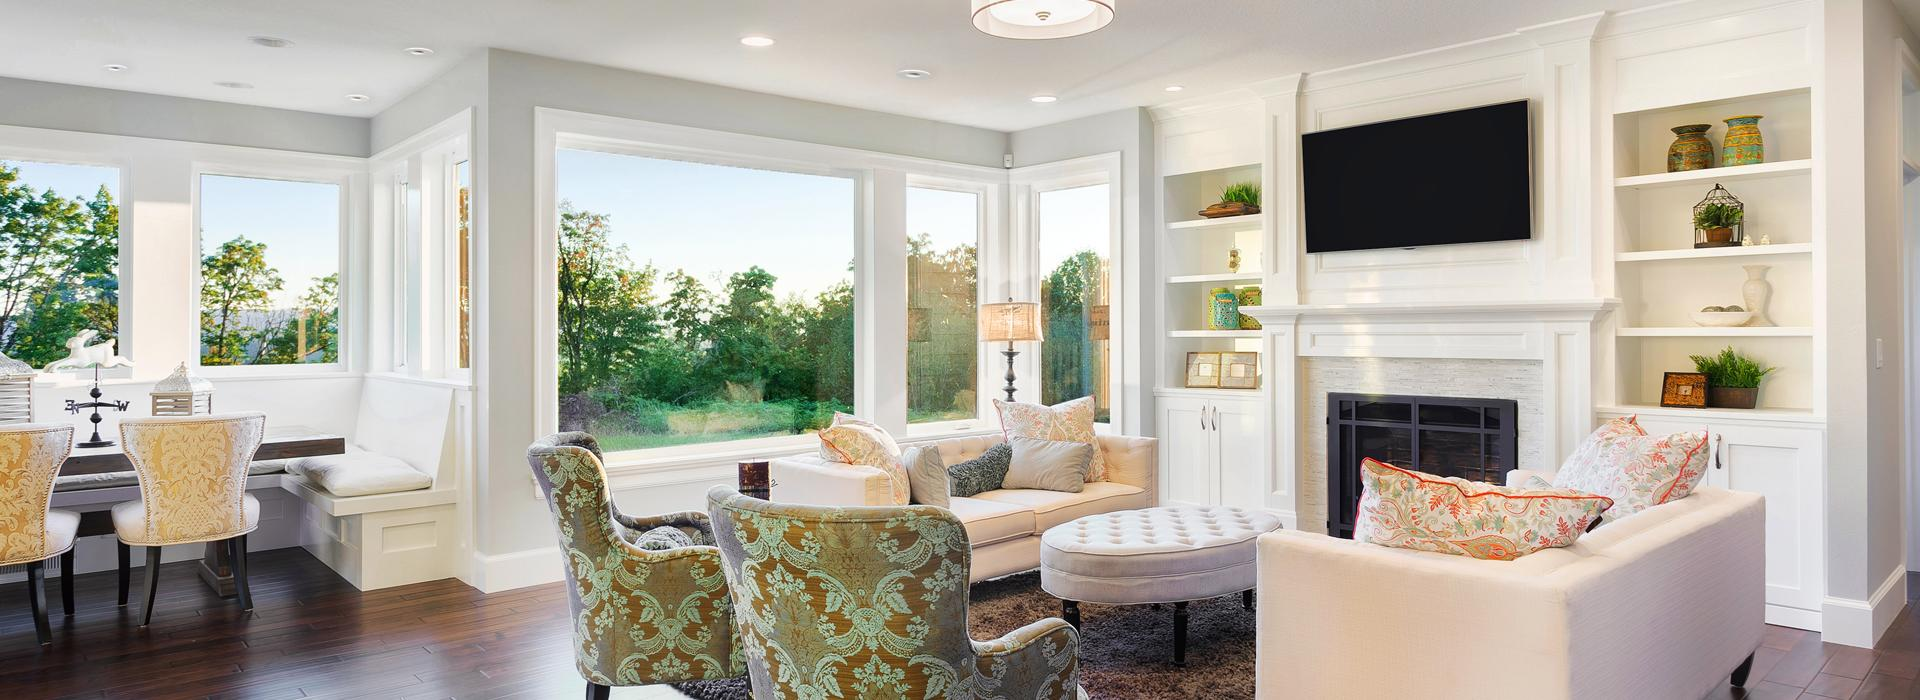 Living room with bright furniture and SpacePak outlets hidden in the ceiling